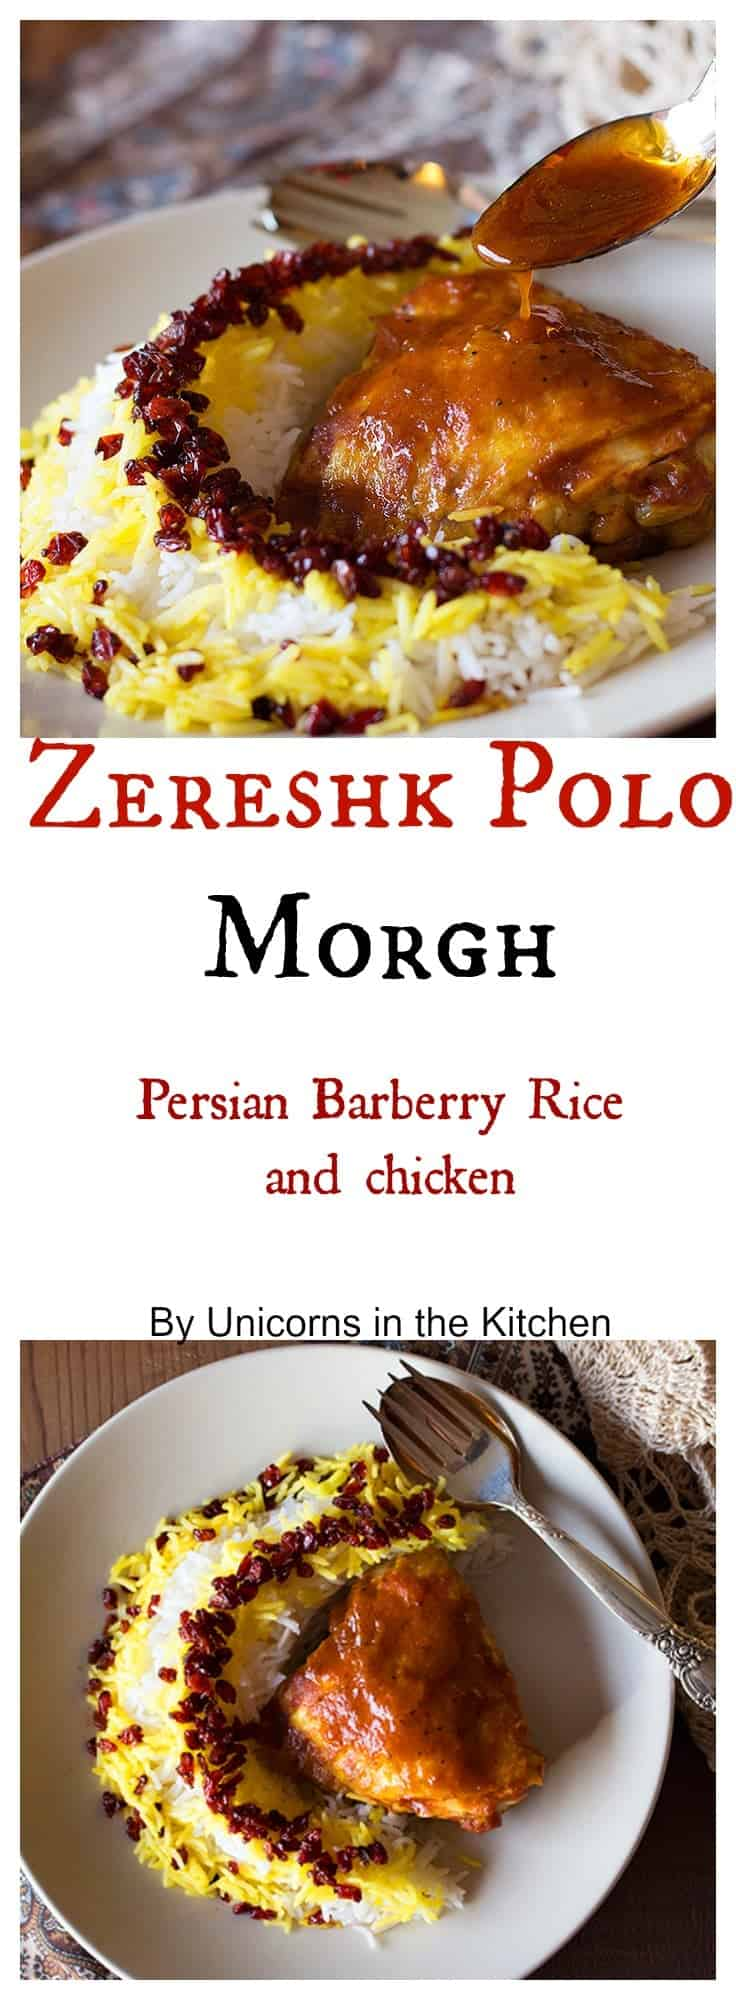 Zereshk Polo Morgh Persian Barberry Rice with Chicken Unicorns